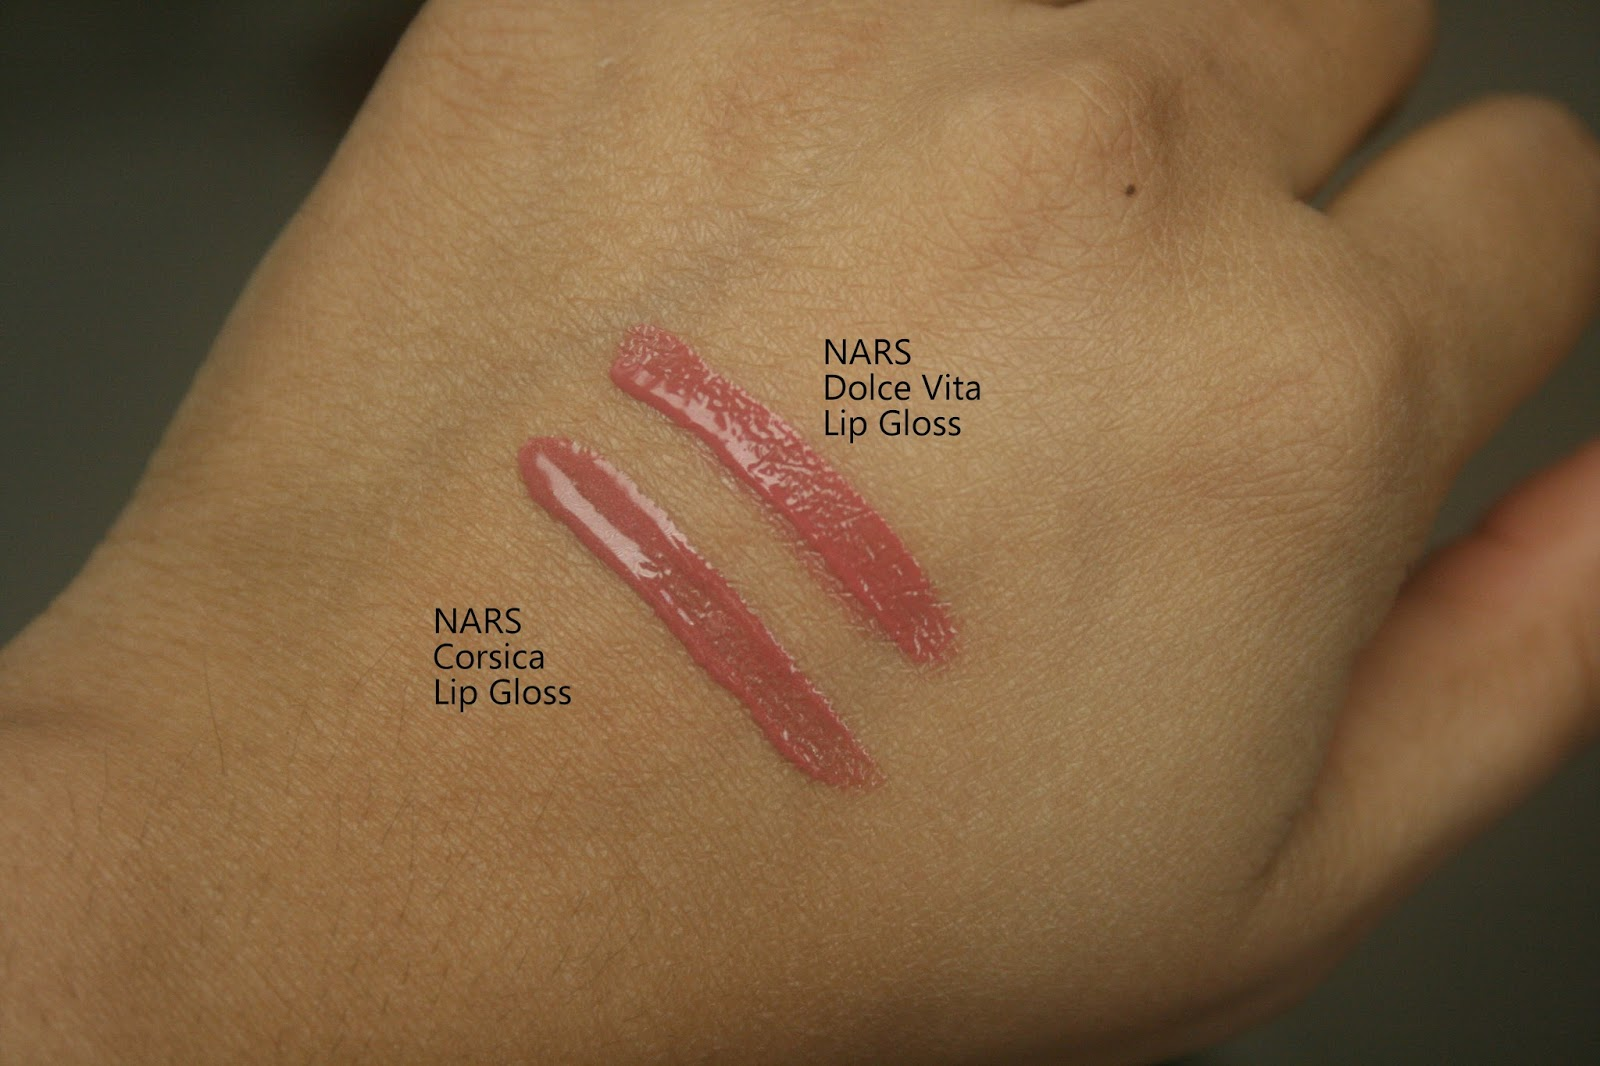 NARS Laced with Edge Holiday Collection Corsica Lip Gloss vs Dolce Vita Lip Gloss Swatch Comparison